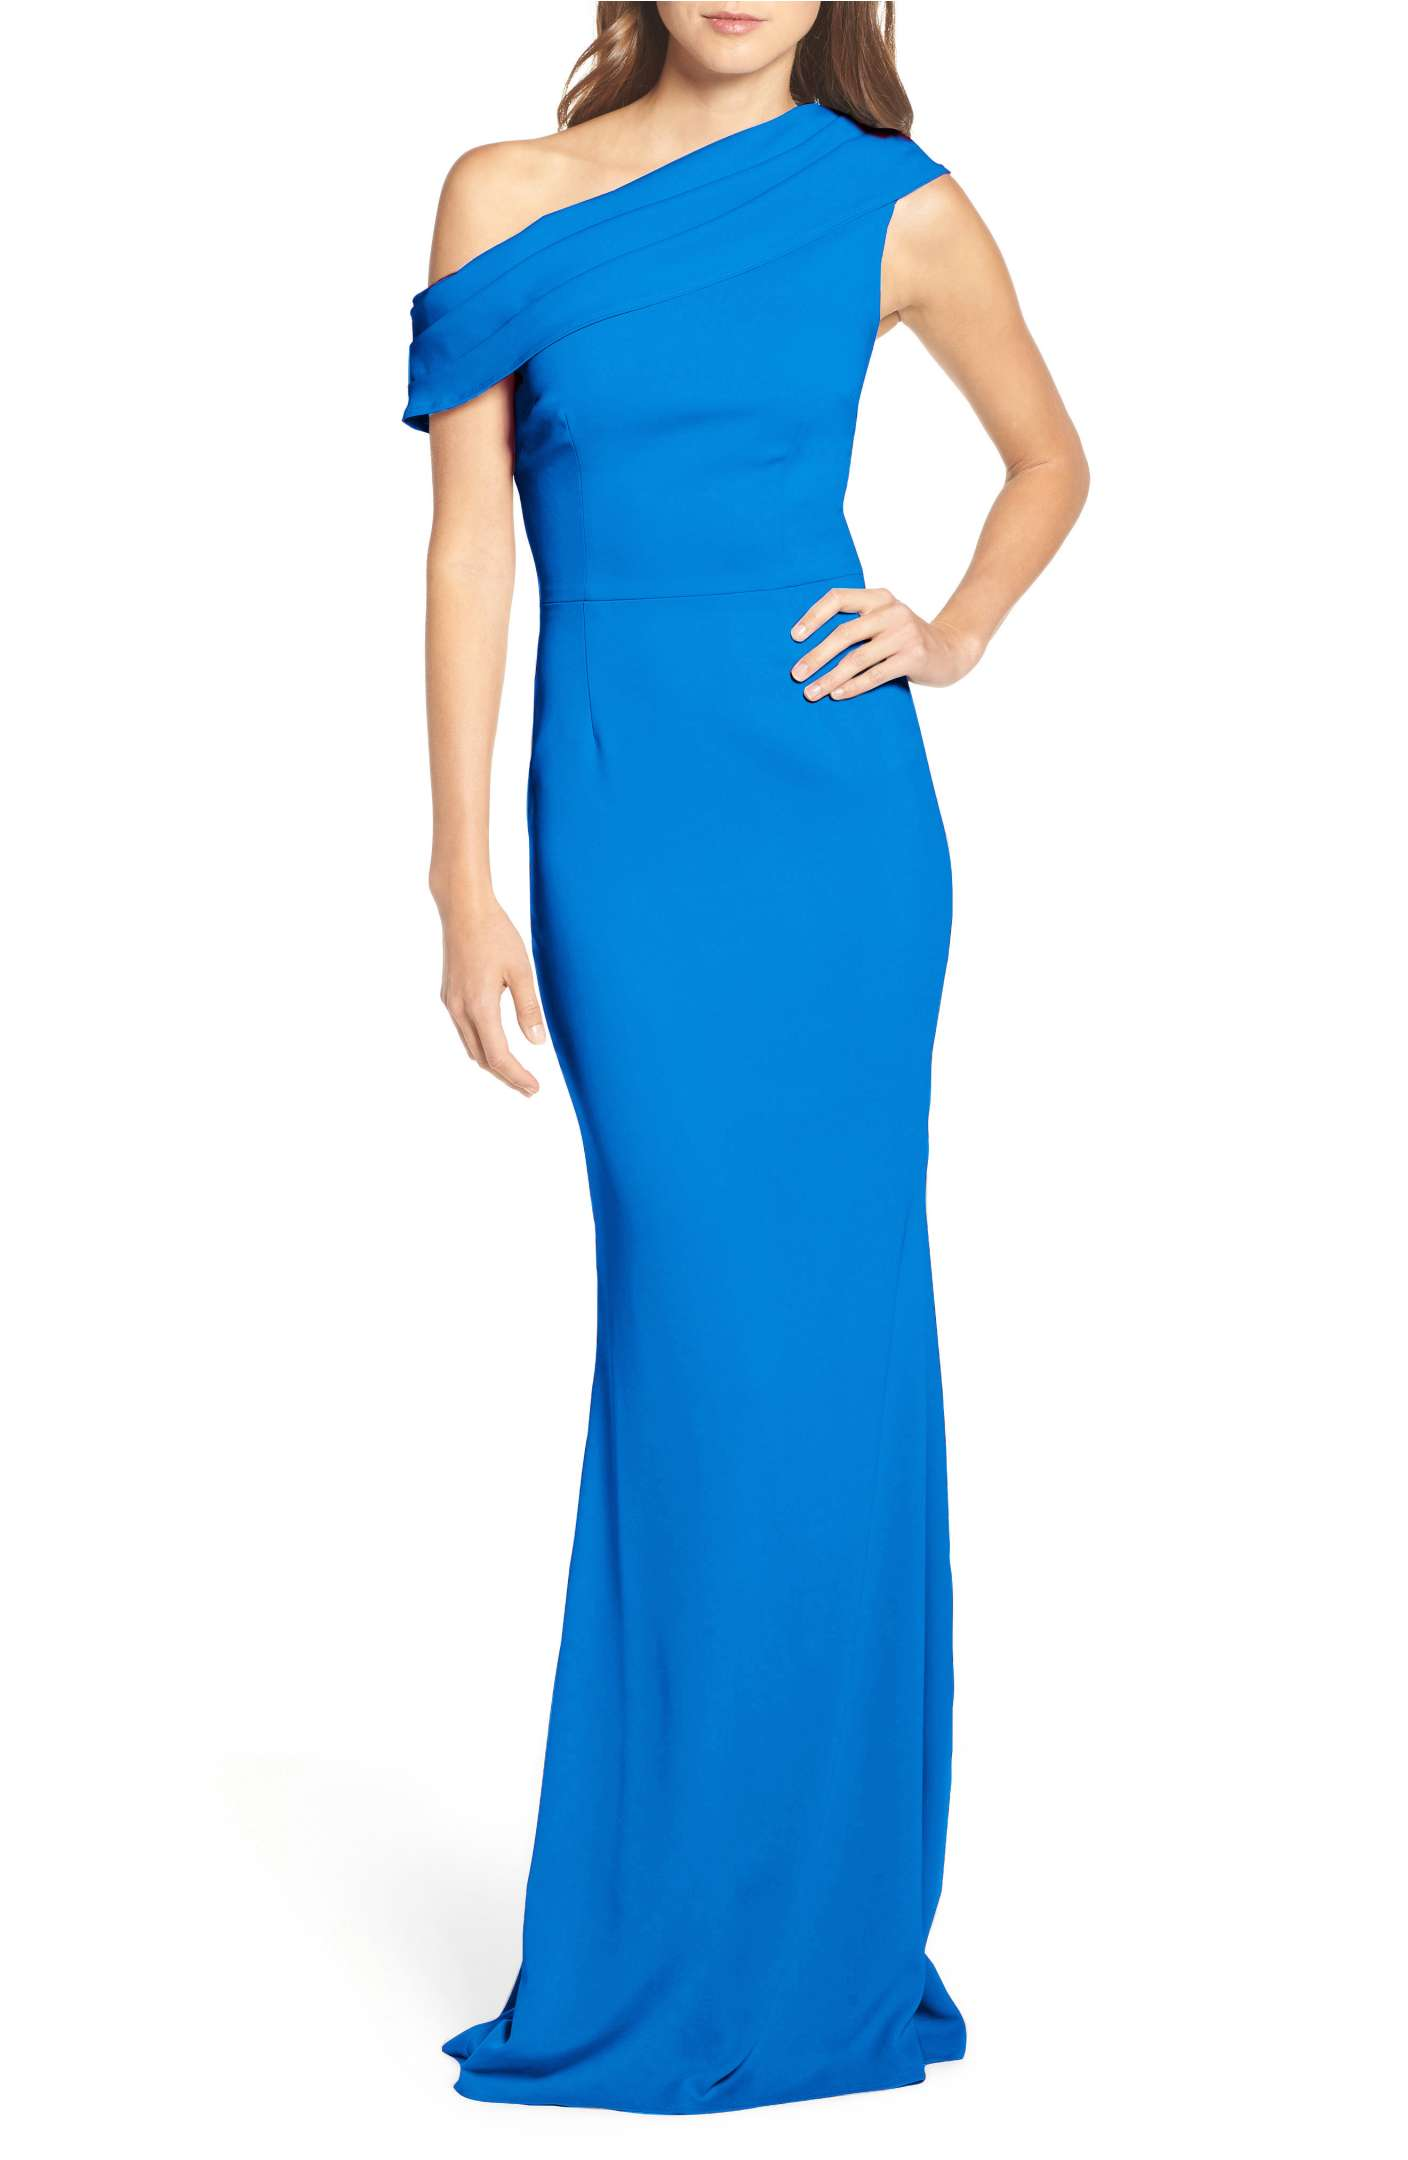 Layla  by Katie May, Nordstrom $295, Sizes 0-14